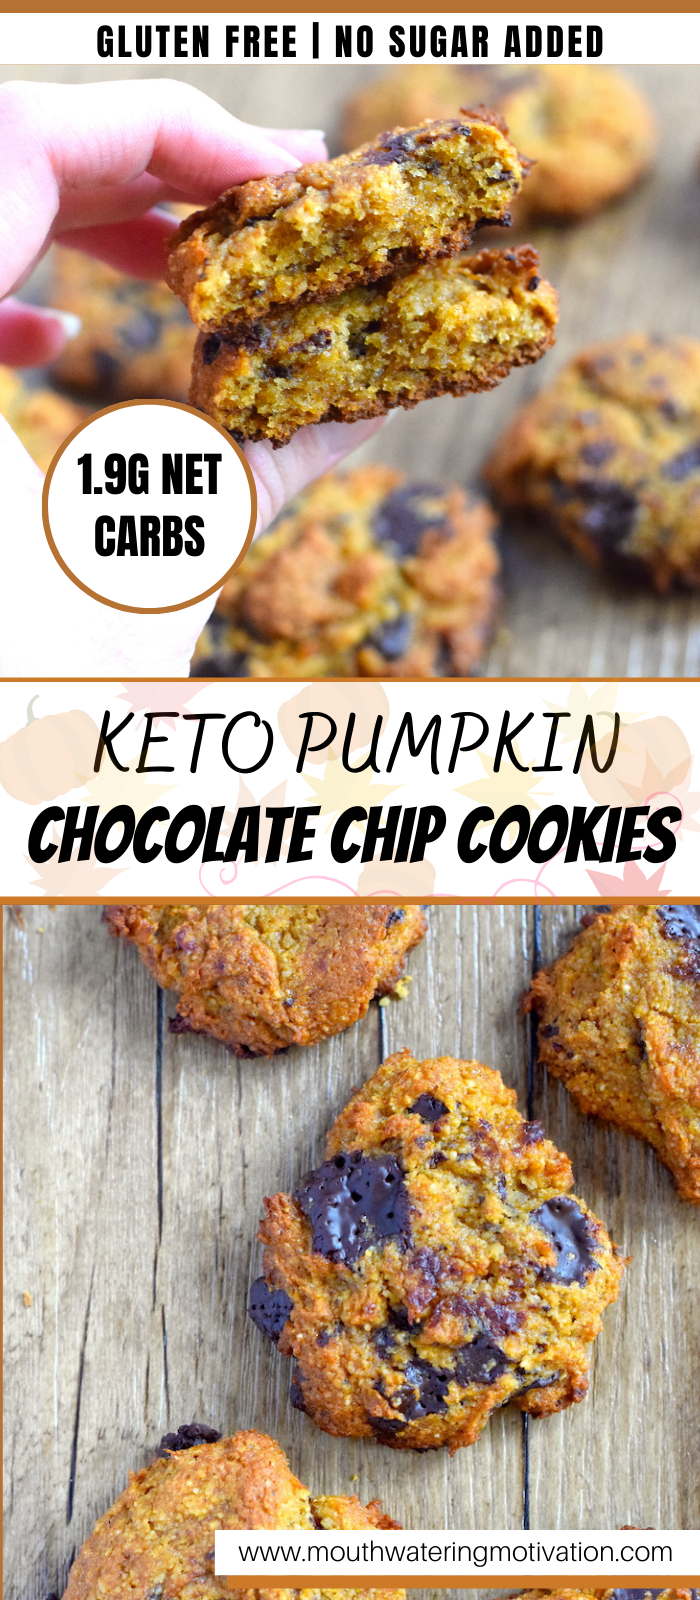 keto pumpkin chocolate chip cookies recipe